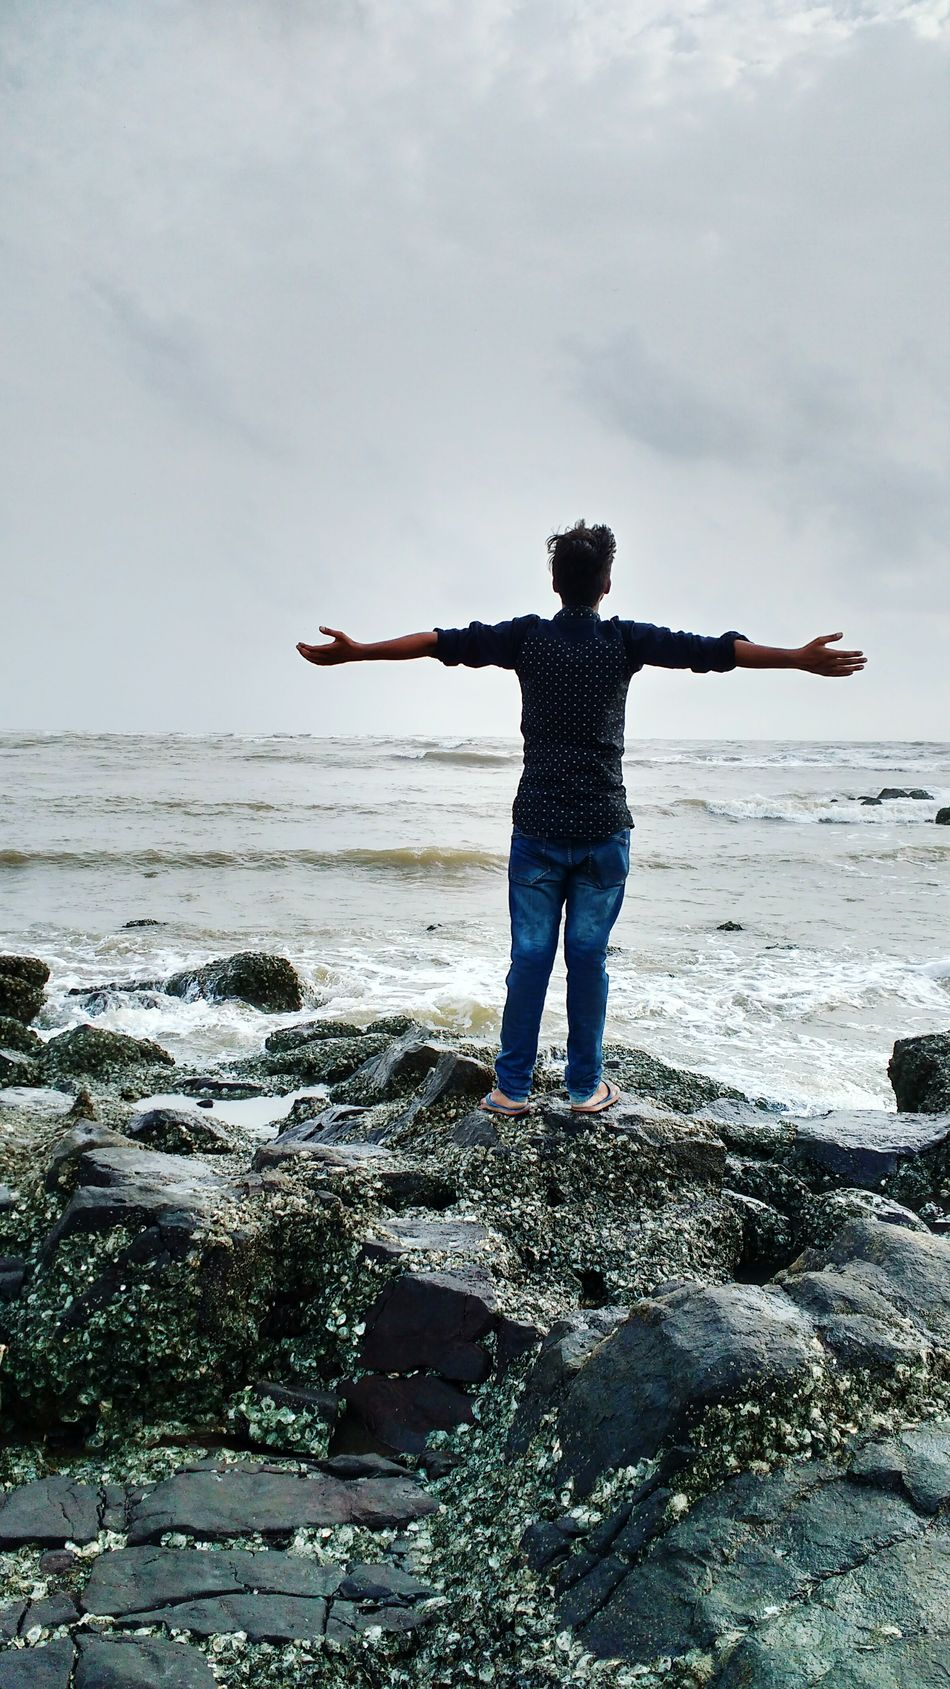 Mumbai Sea Beach Water Horizon Over Water Standing Vacations Tourist Travel Destinations Shore Lifestyles Tourism Scenics Rear View Men Arms Outstretched Full Length Leisure Activity Tranquil Scene Tranquility Idyllic Hajiali Hajialidargah First Eyeem Photo